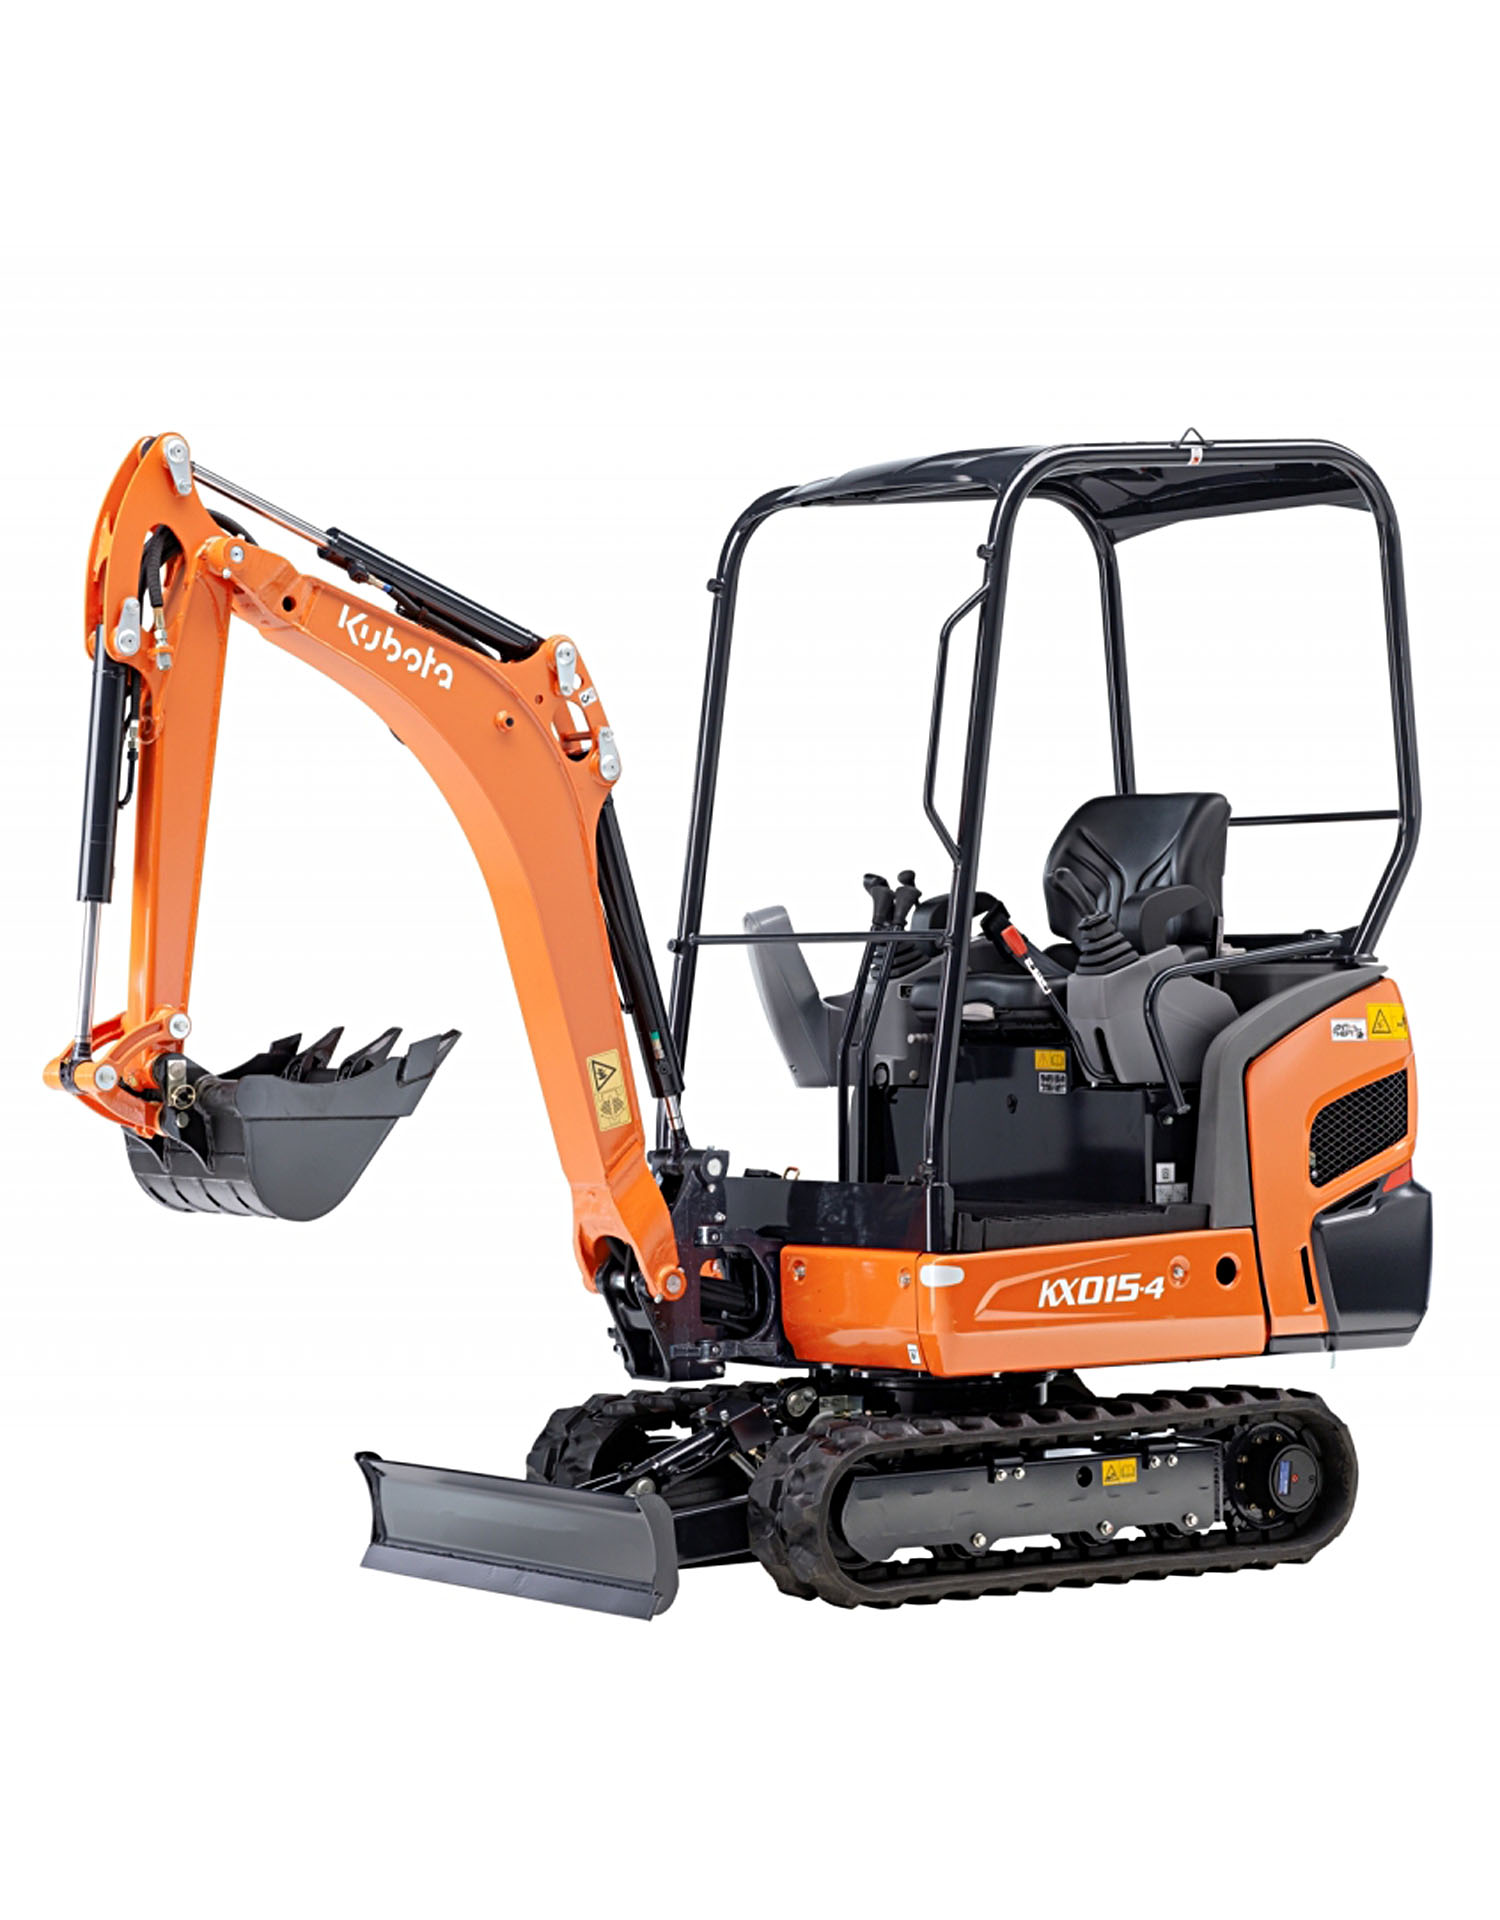 1 5 Ton Mini Excavator • Plant, Tool, Access and Self-Drive